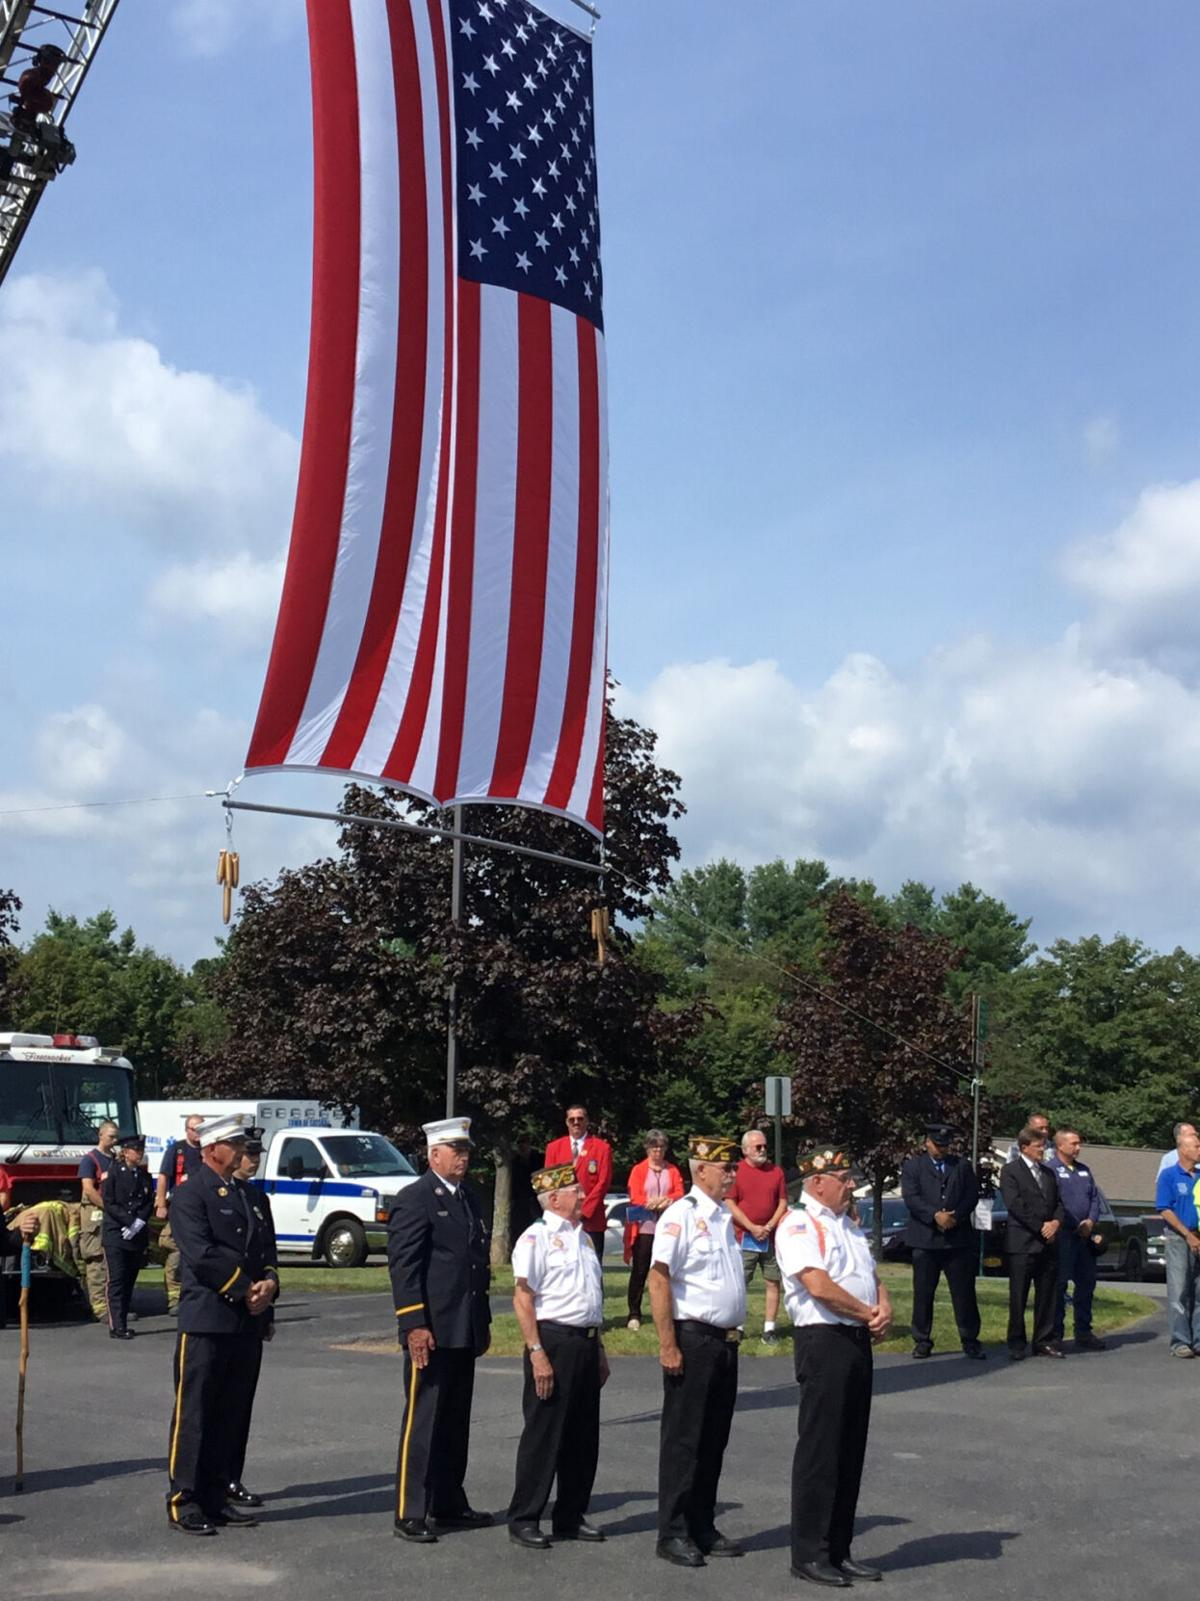 Counties plan somber 9/11 observance